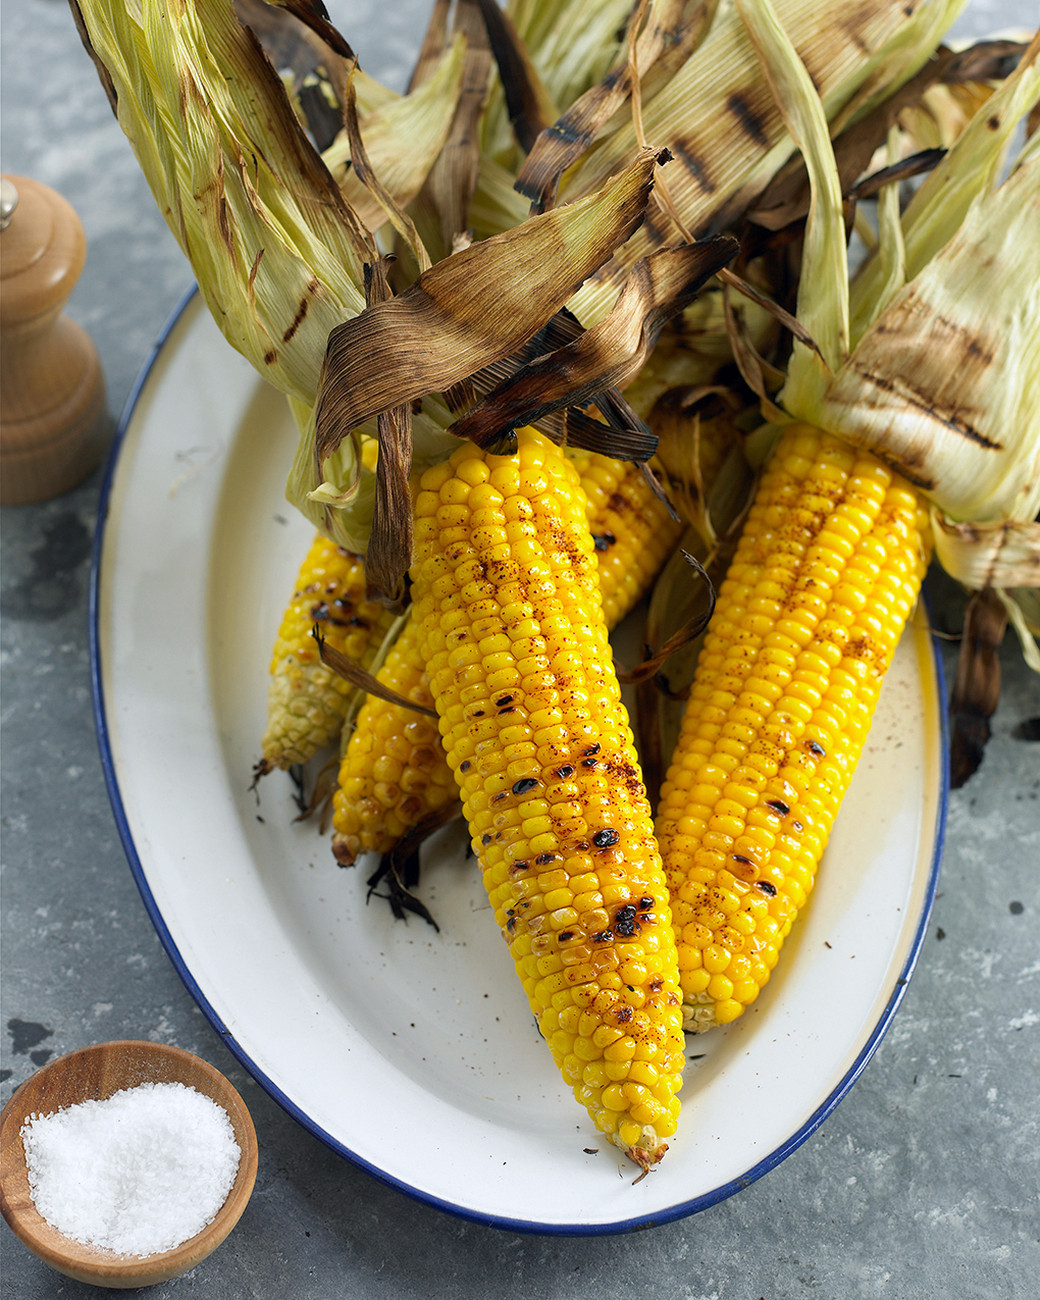 Cooking Corn On The Cob On The Grill  Dara Moskowitz Grumdahl's Top 5 Roast Corn Recipes WCCO